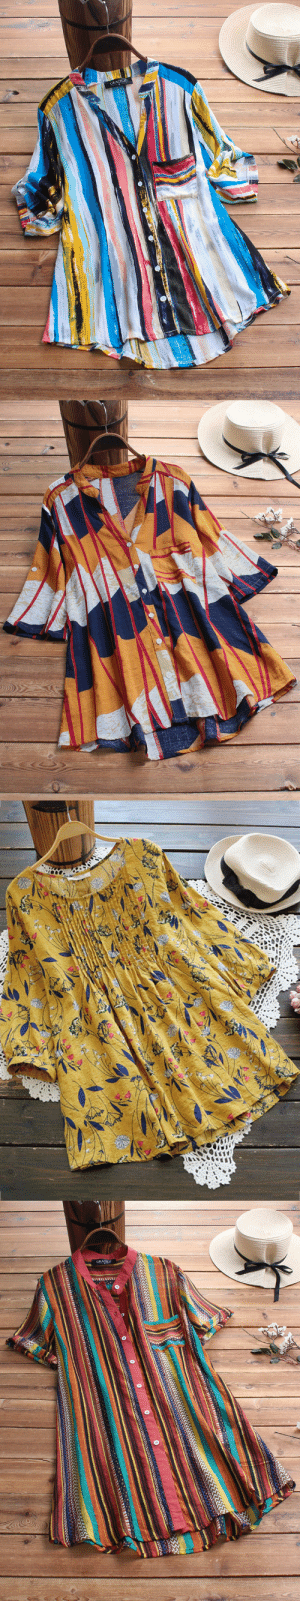 permanentfilemugglethings: Multicolor Striped Print ¾ Sleeve Blouse For Girl Check out HERE 20% off coupon code:August20 : GRACILA   GRACILA permanentfilemugglethings: Multicolor Striped Print ¾ Sleeve Blouse For Girl Check out HERE 20% off coupon code:August20